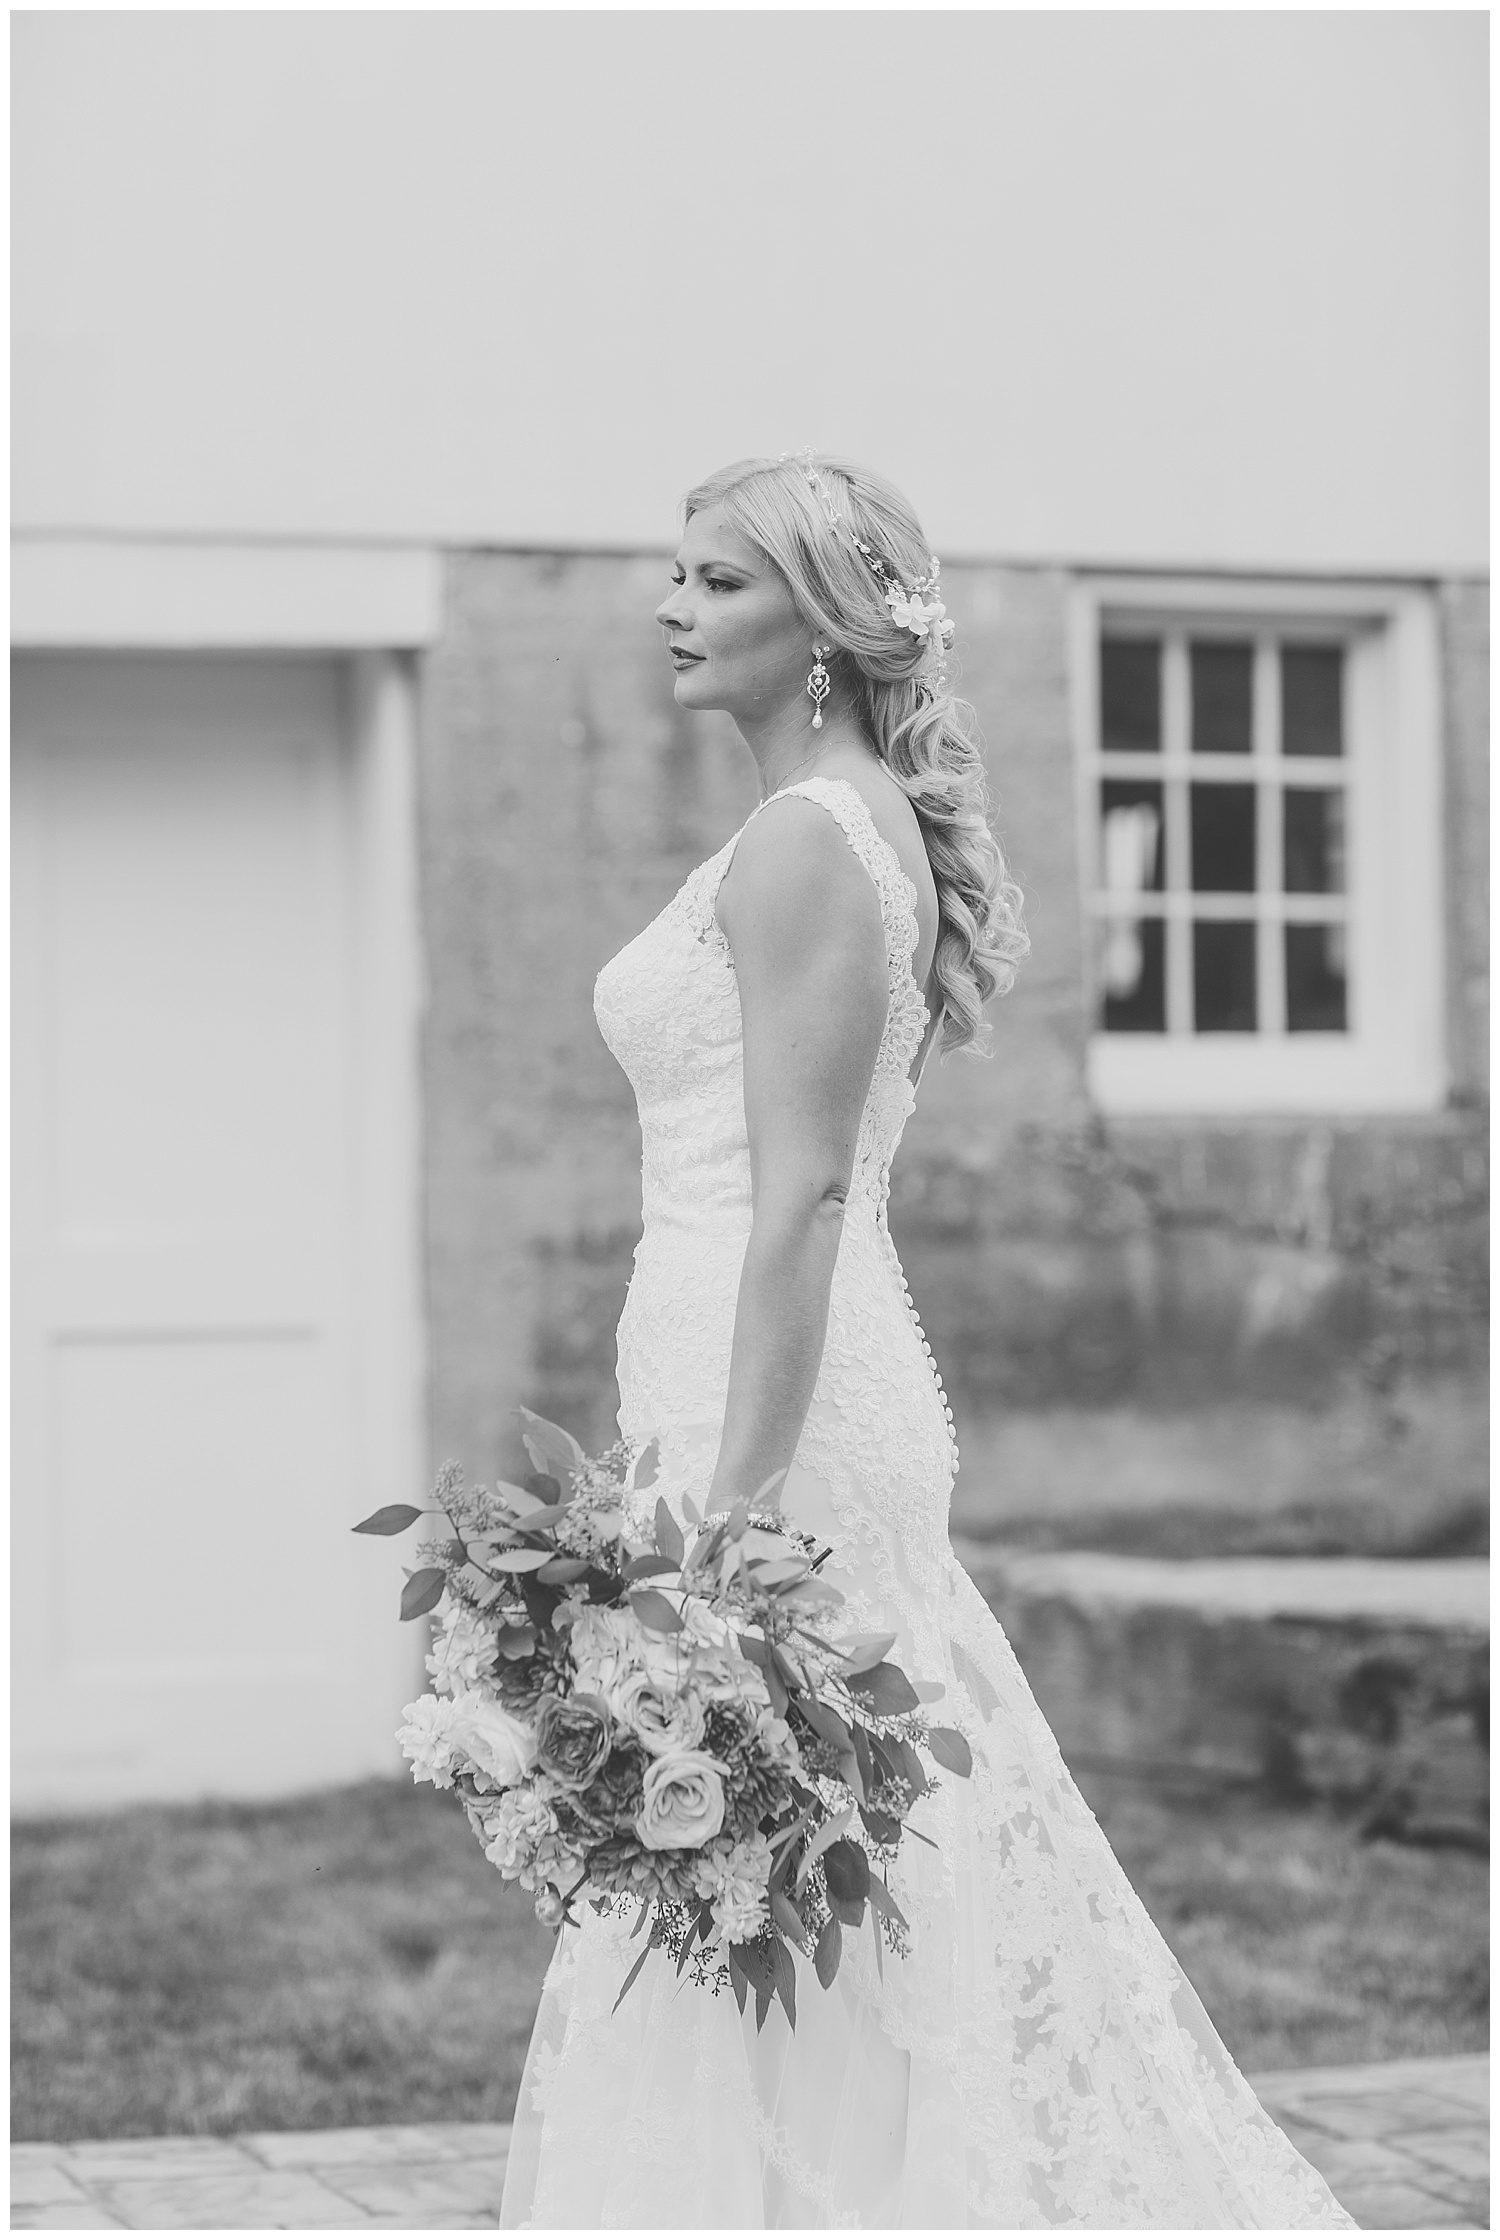 Kellie and Andrew Fitch - Avon Century Barns - Lass and Beau-174_Buffalo wedding photography.jpg